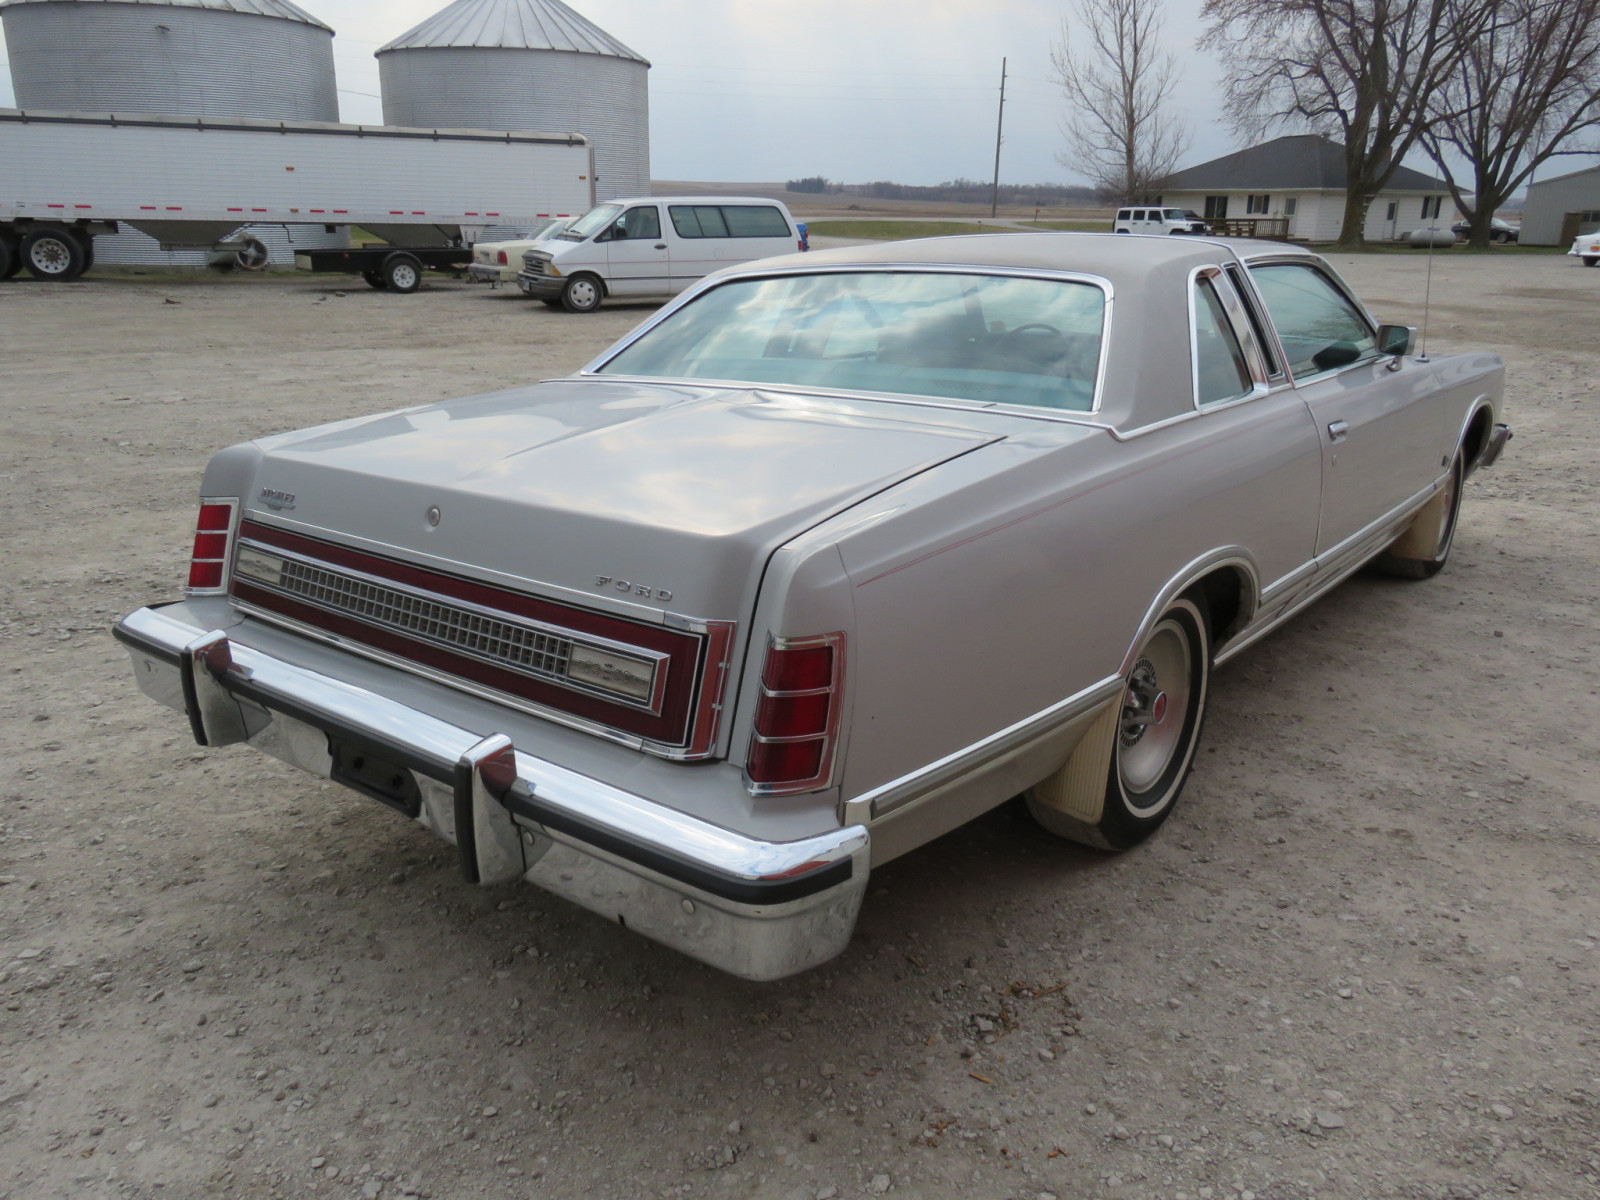 1977 Ford LTD Coupe - Image 5